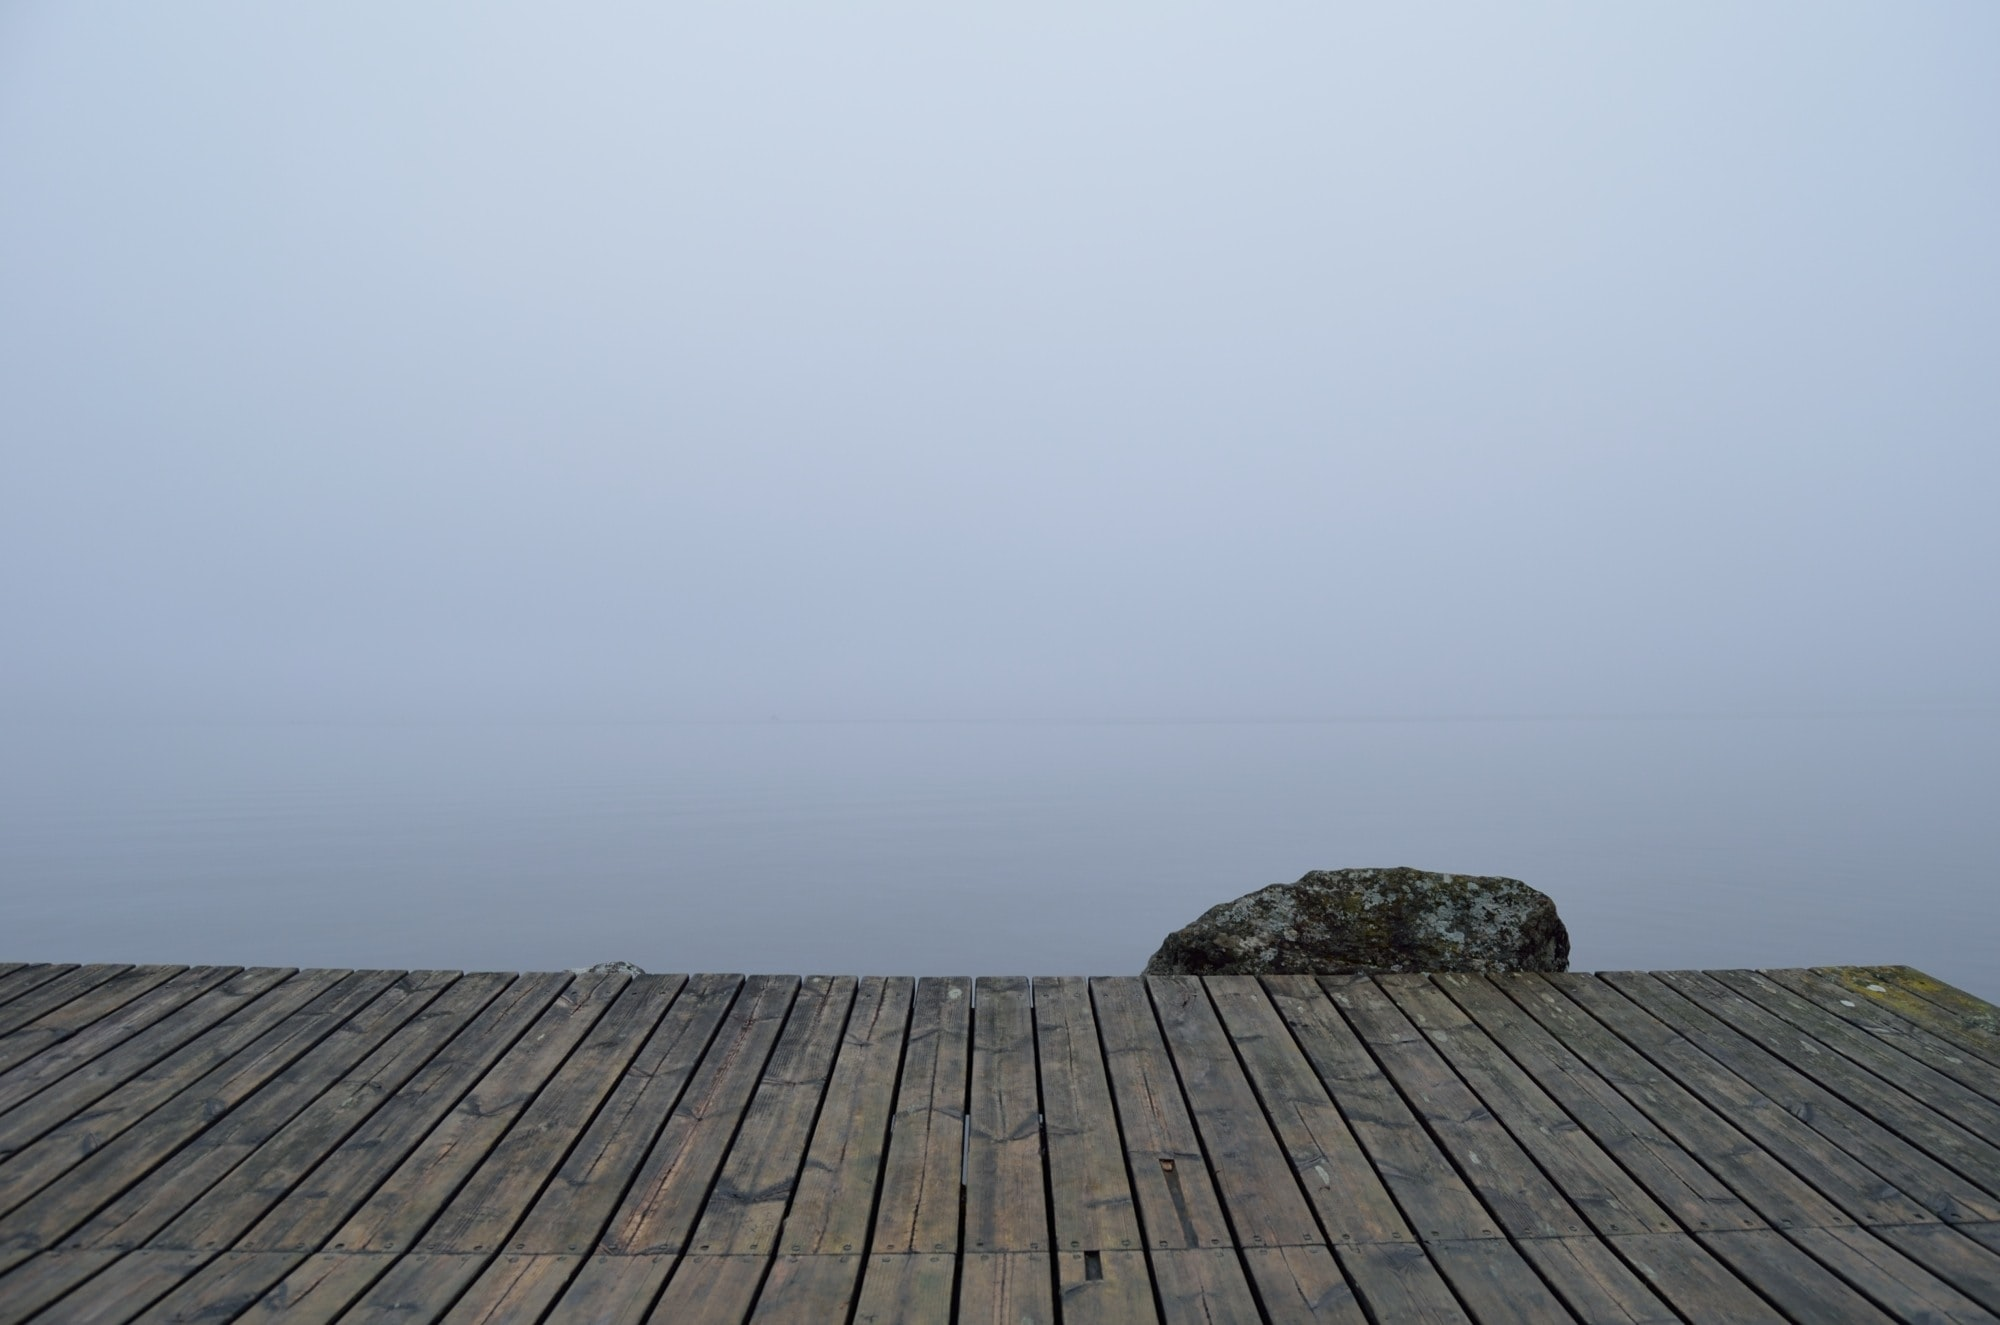 brown wooden dock in foggy weather at daytime